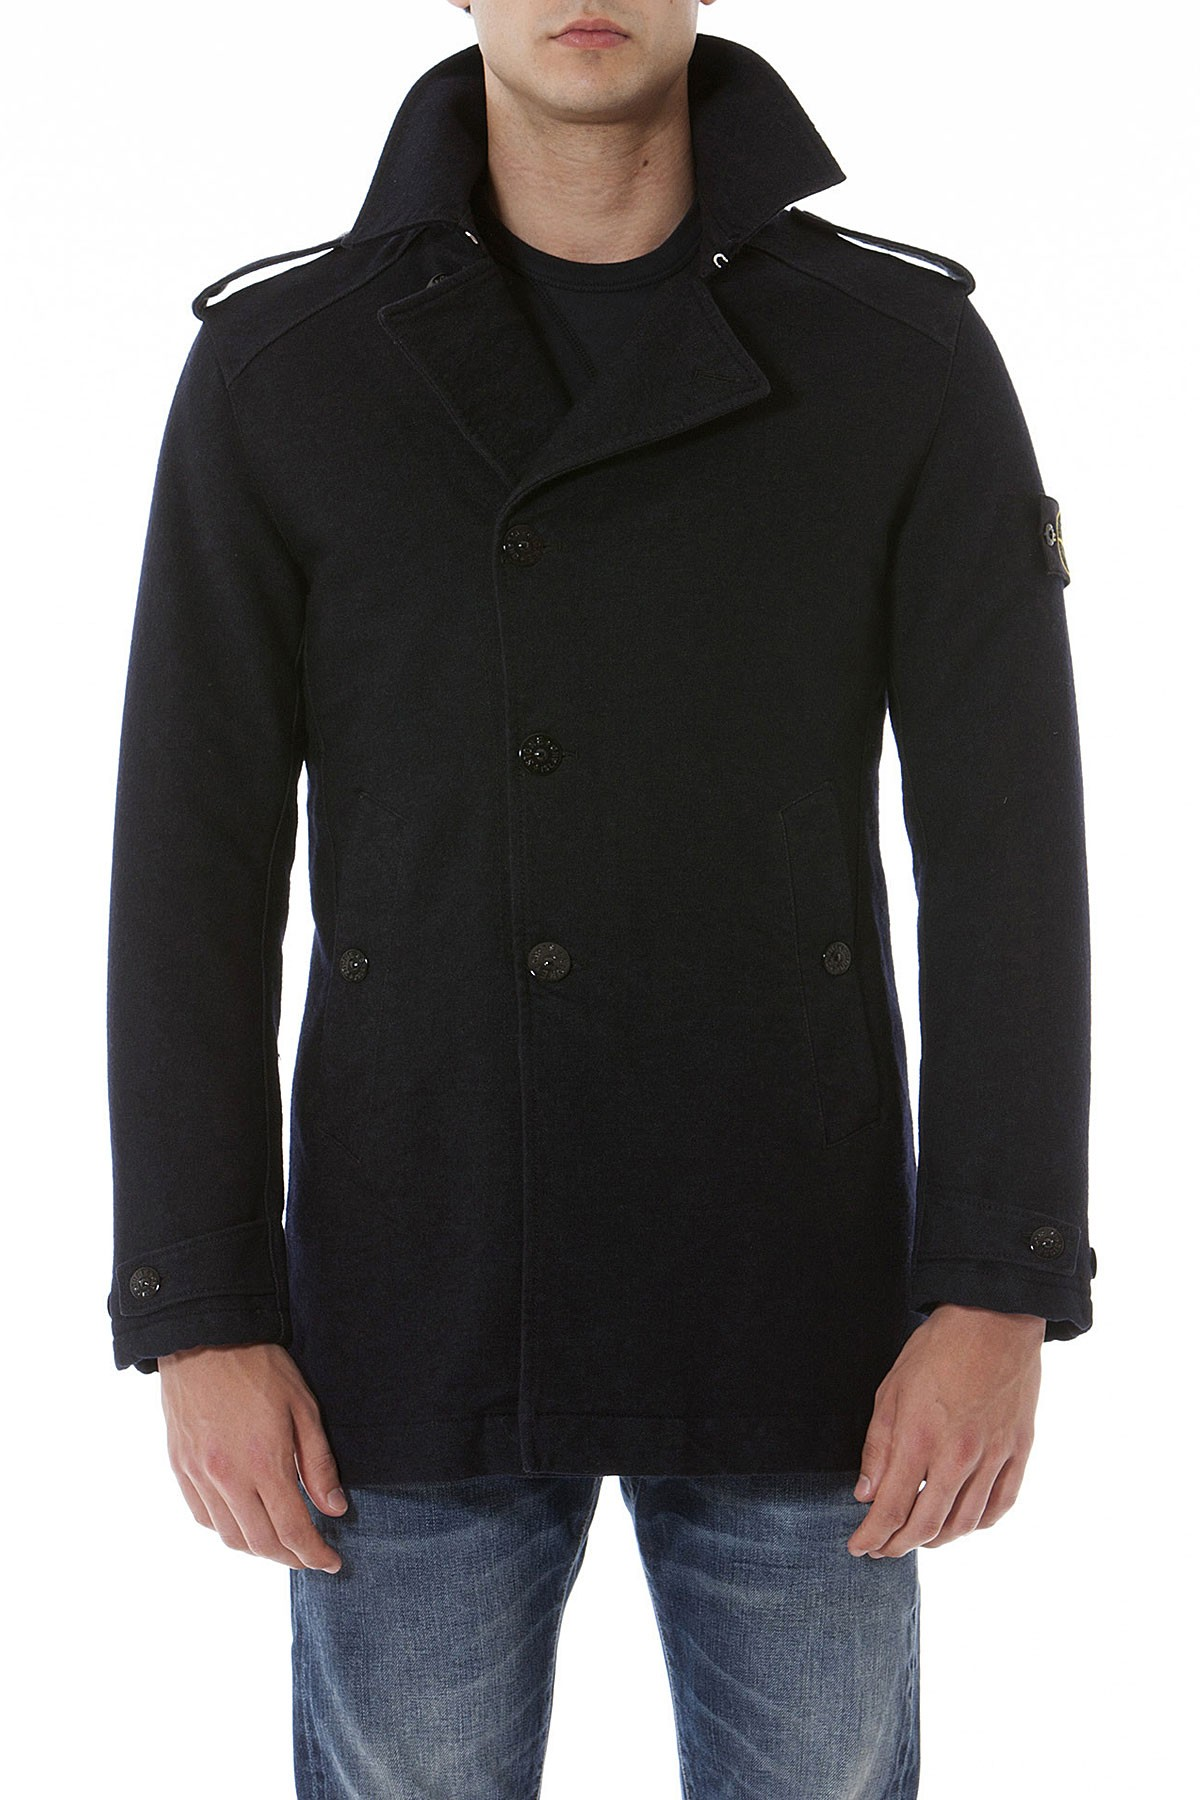 a40c42e4177b STONE ISLAND Dark blue jacket for men autumn winter 14-15. Tap to expand